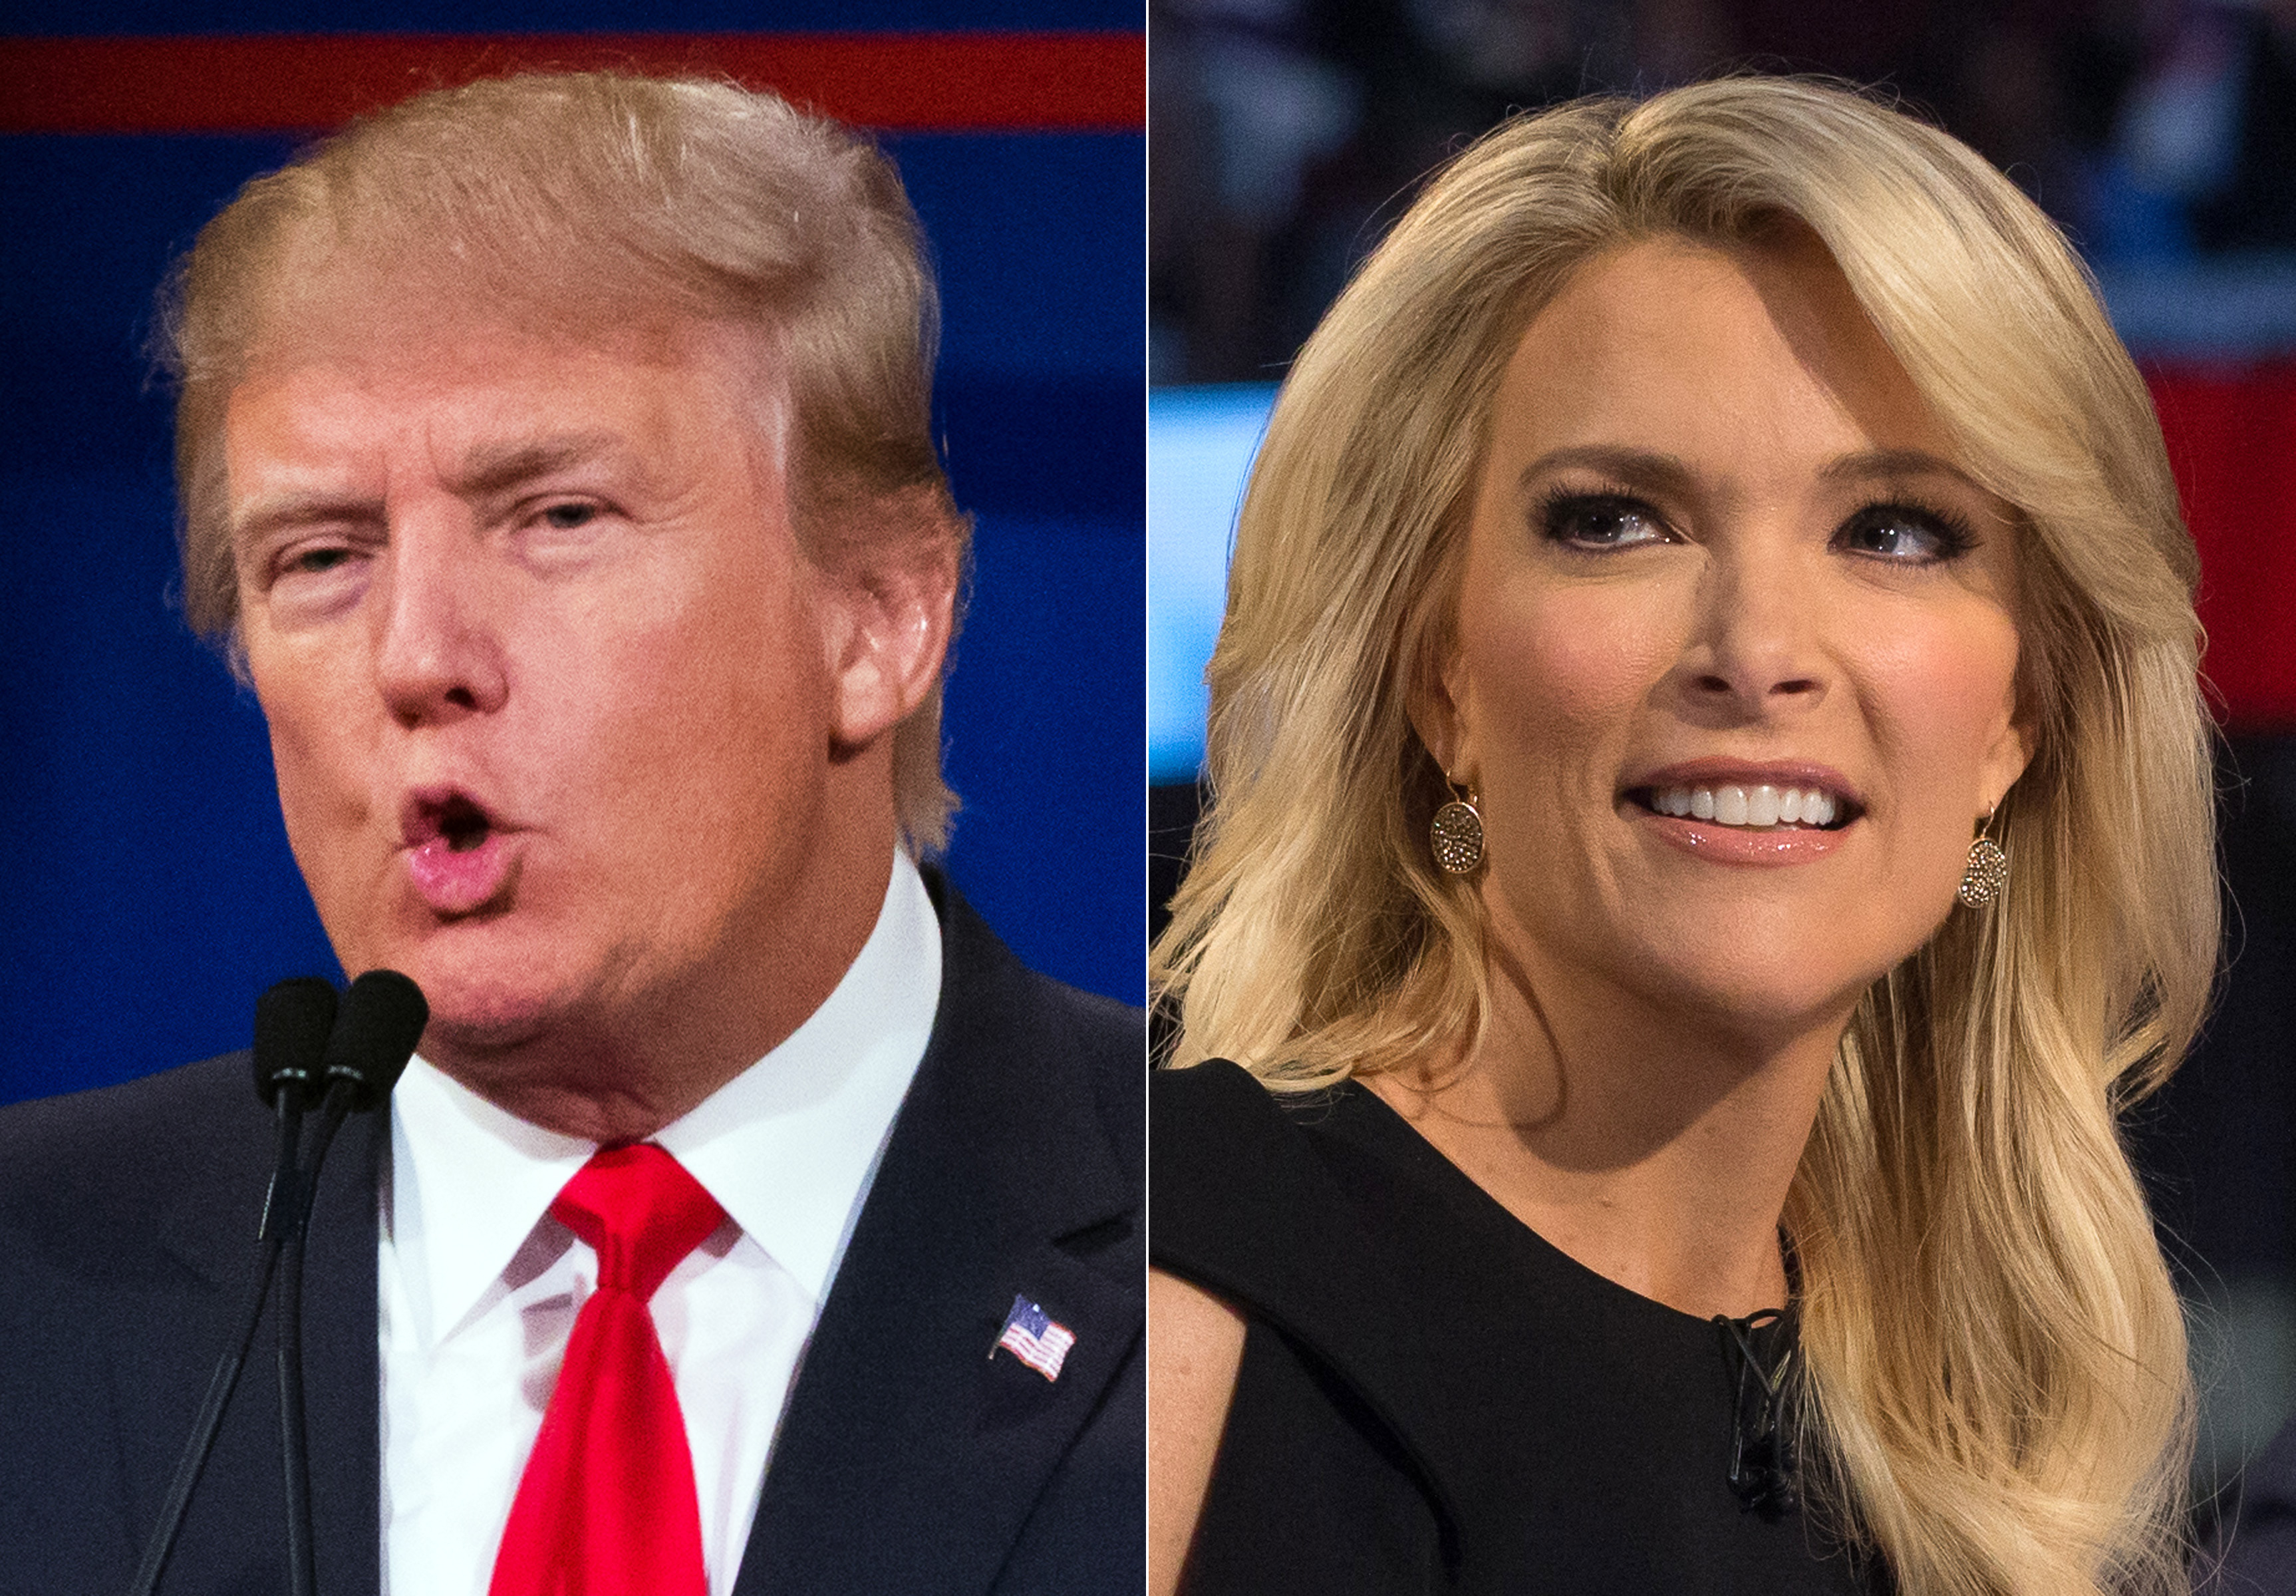 Donald Trump says he'll attend March debate moderated by Megyn Kelly